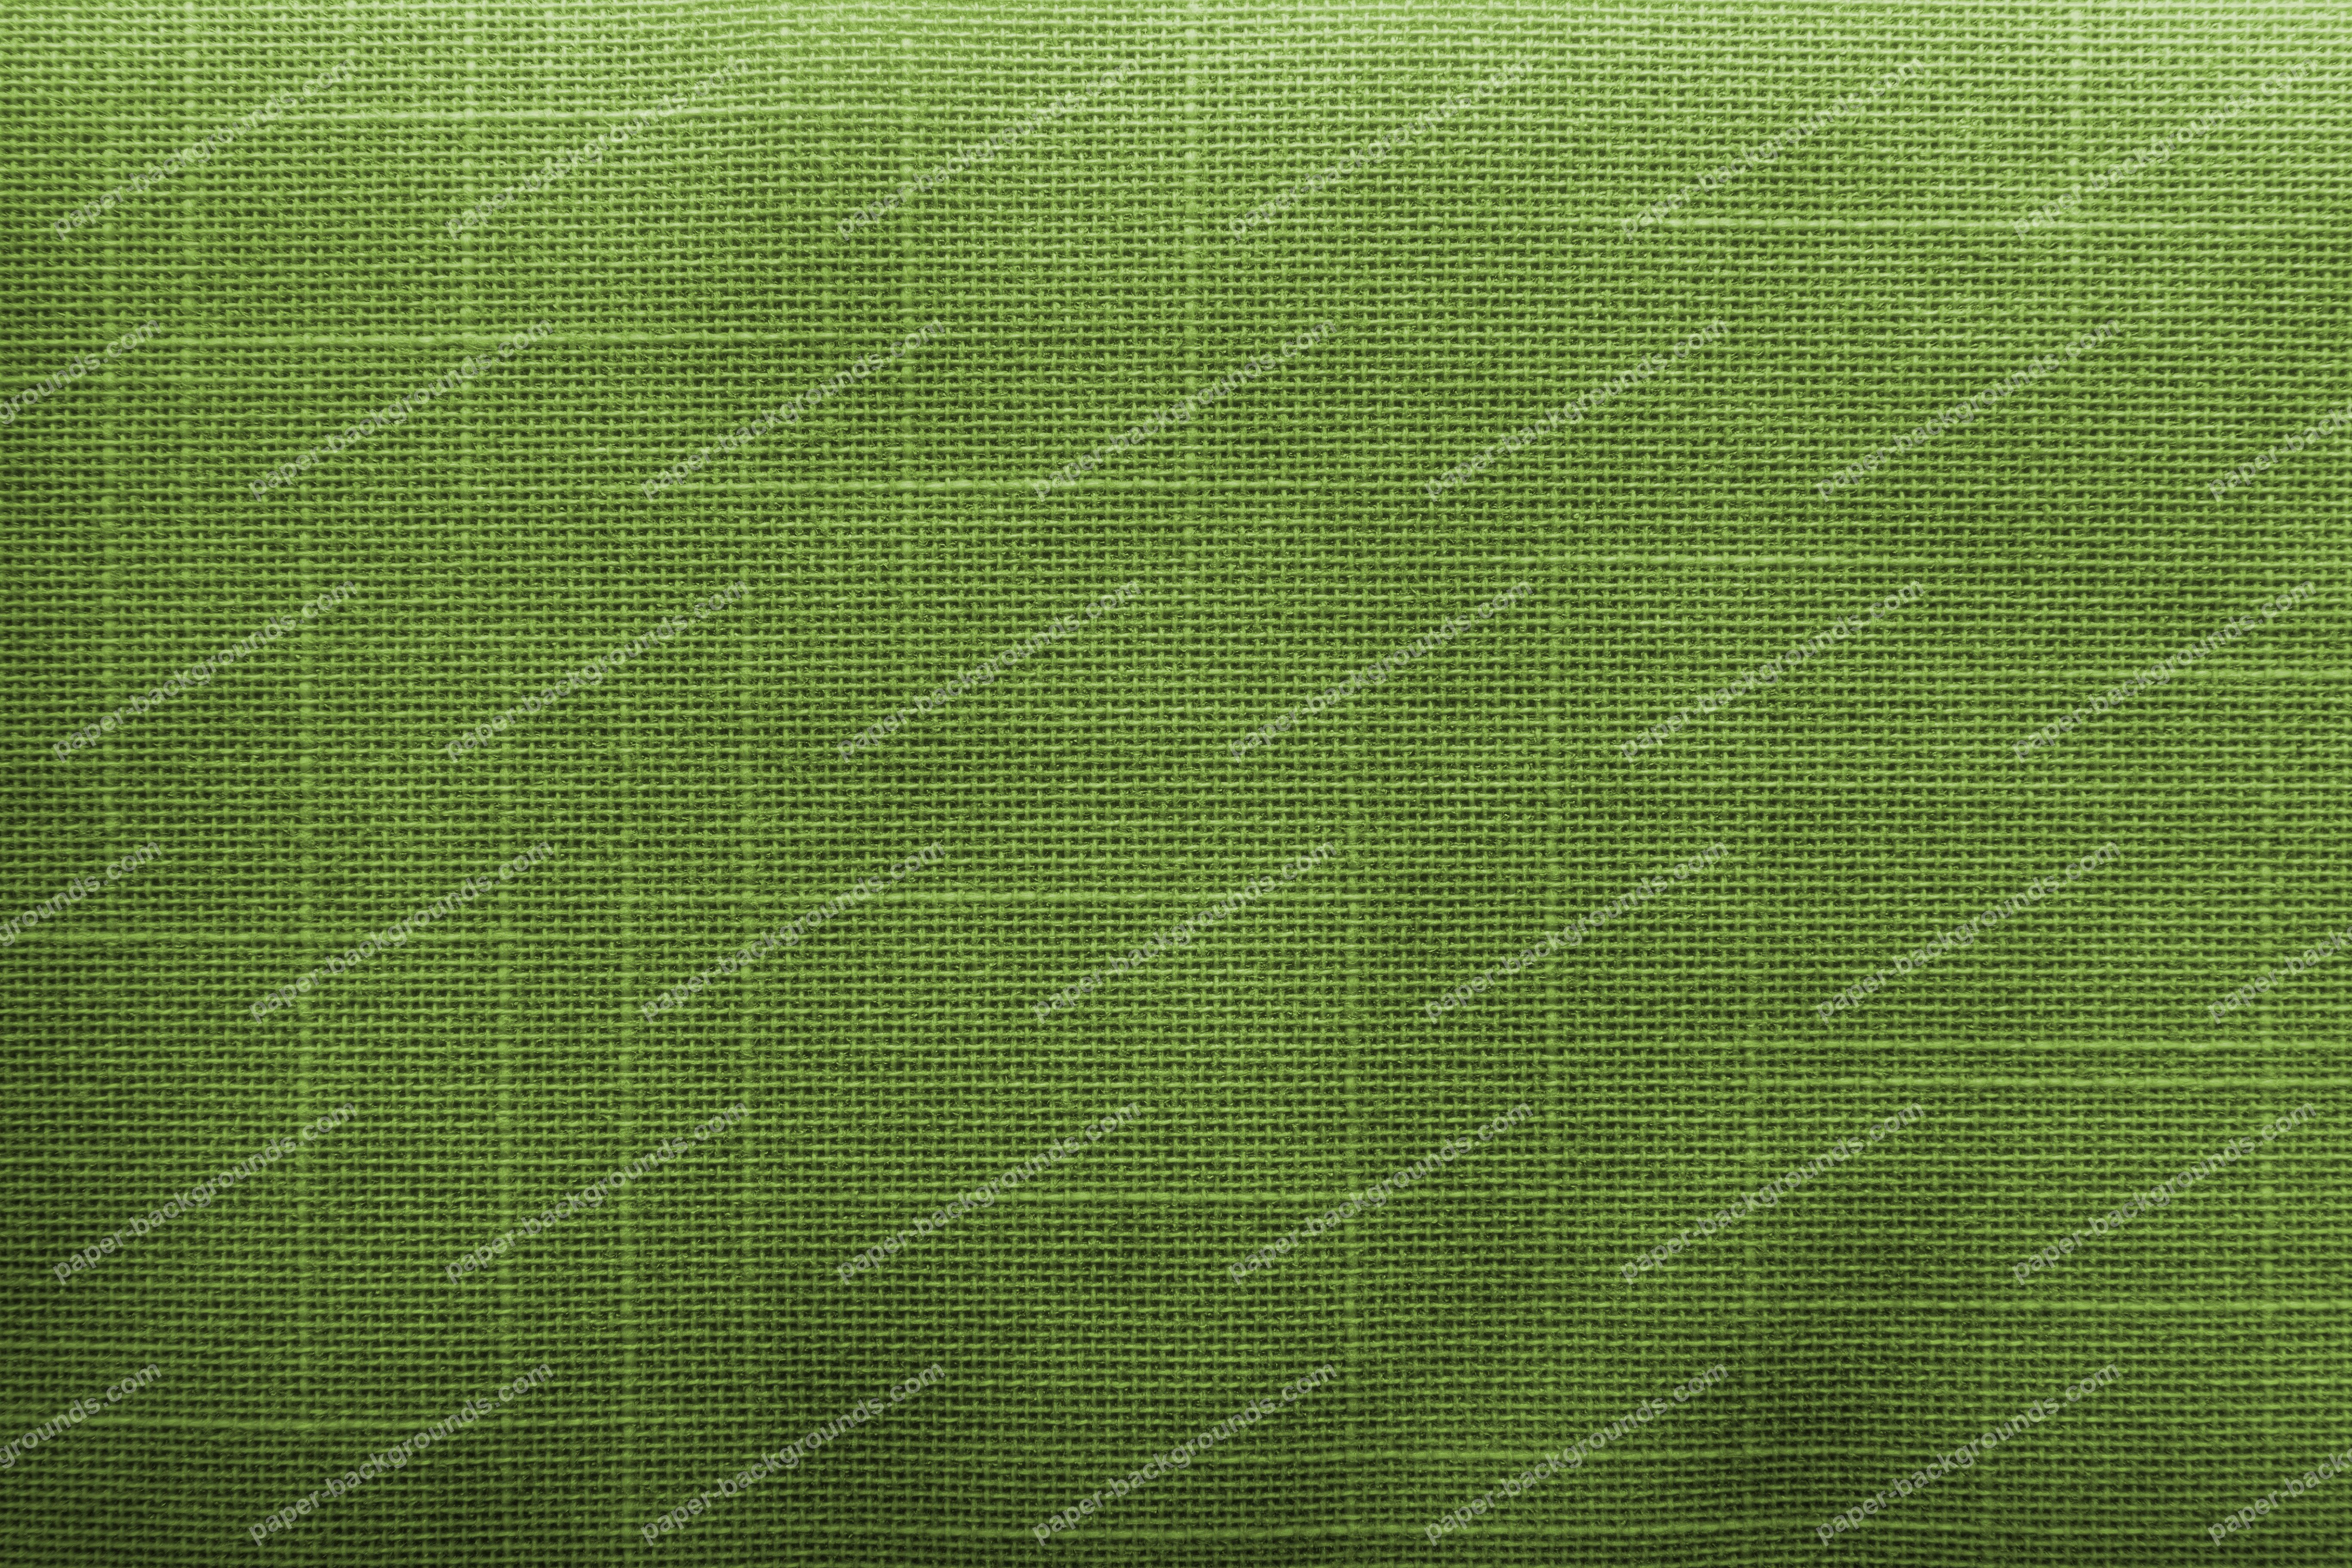 Green Canvas Fabric Texture